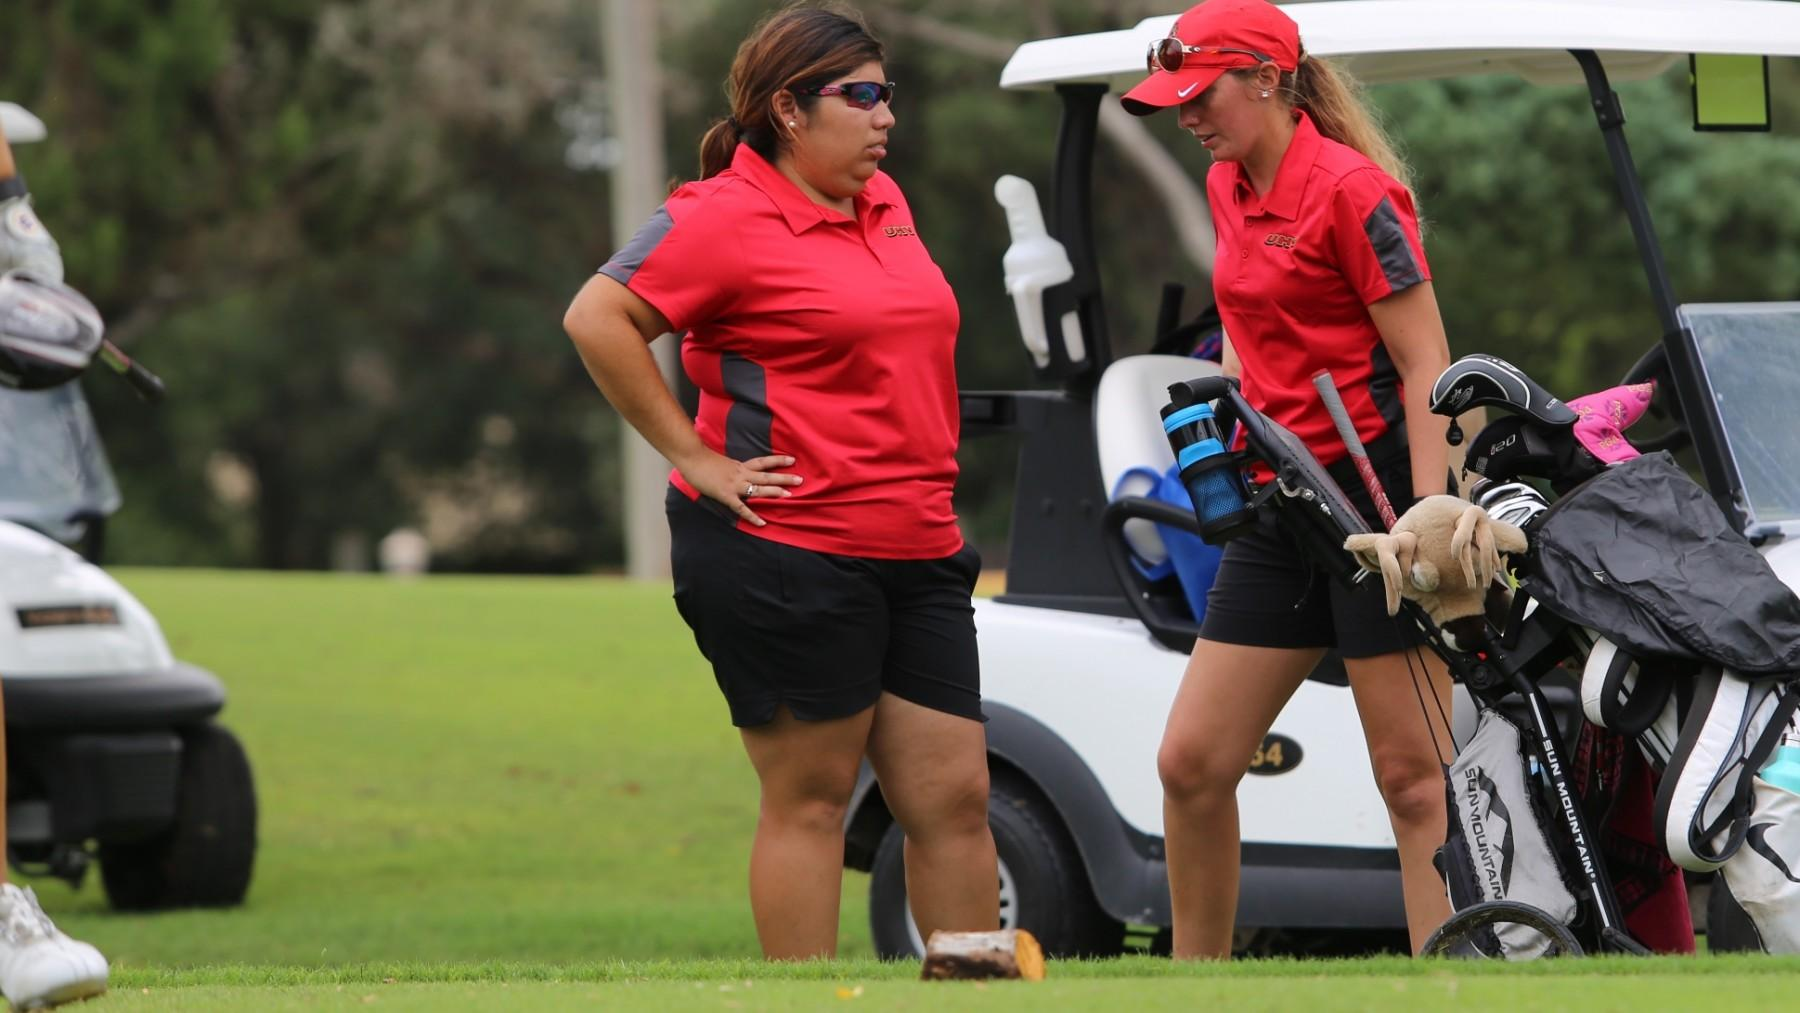 Christi Cano was named the new UHV head women's and men's golf coach on Thursday.